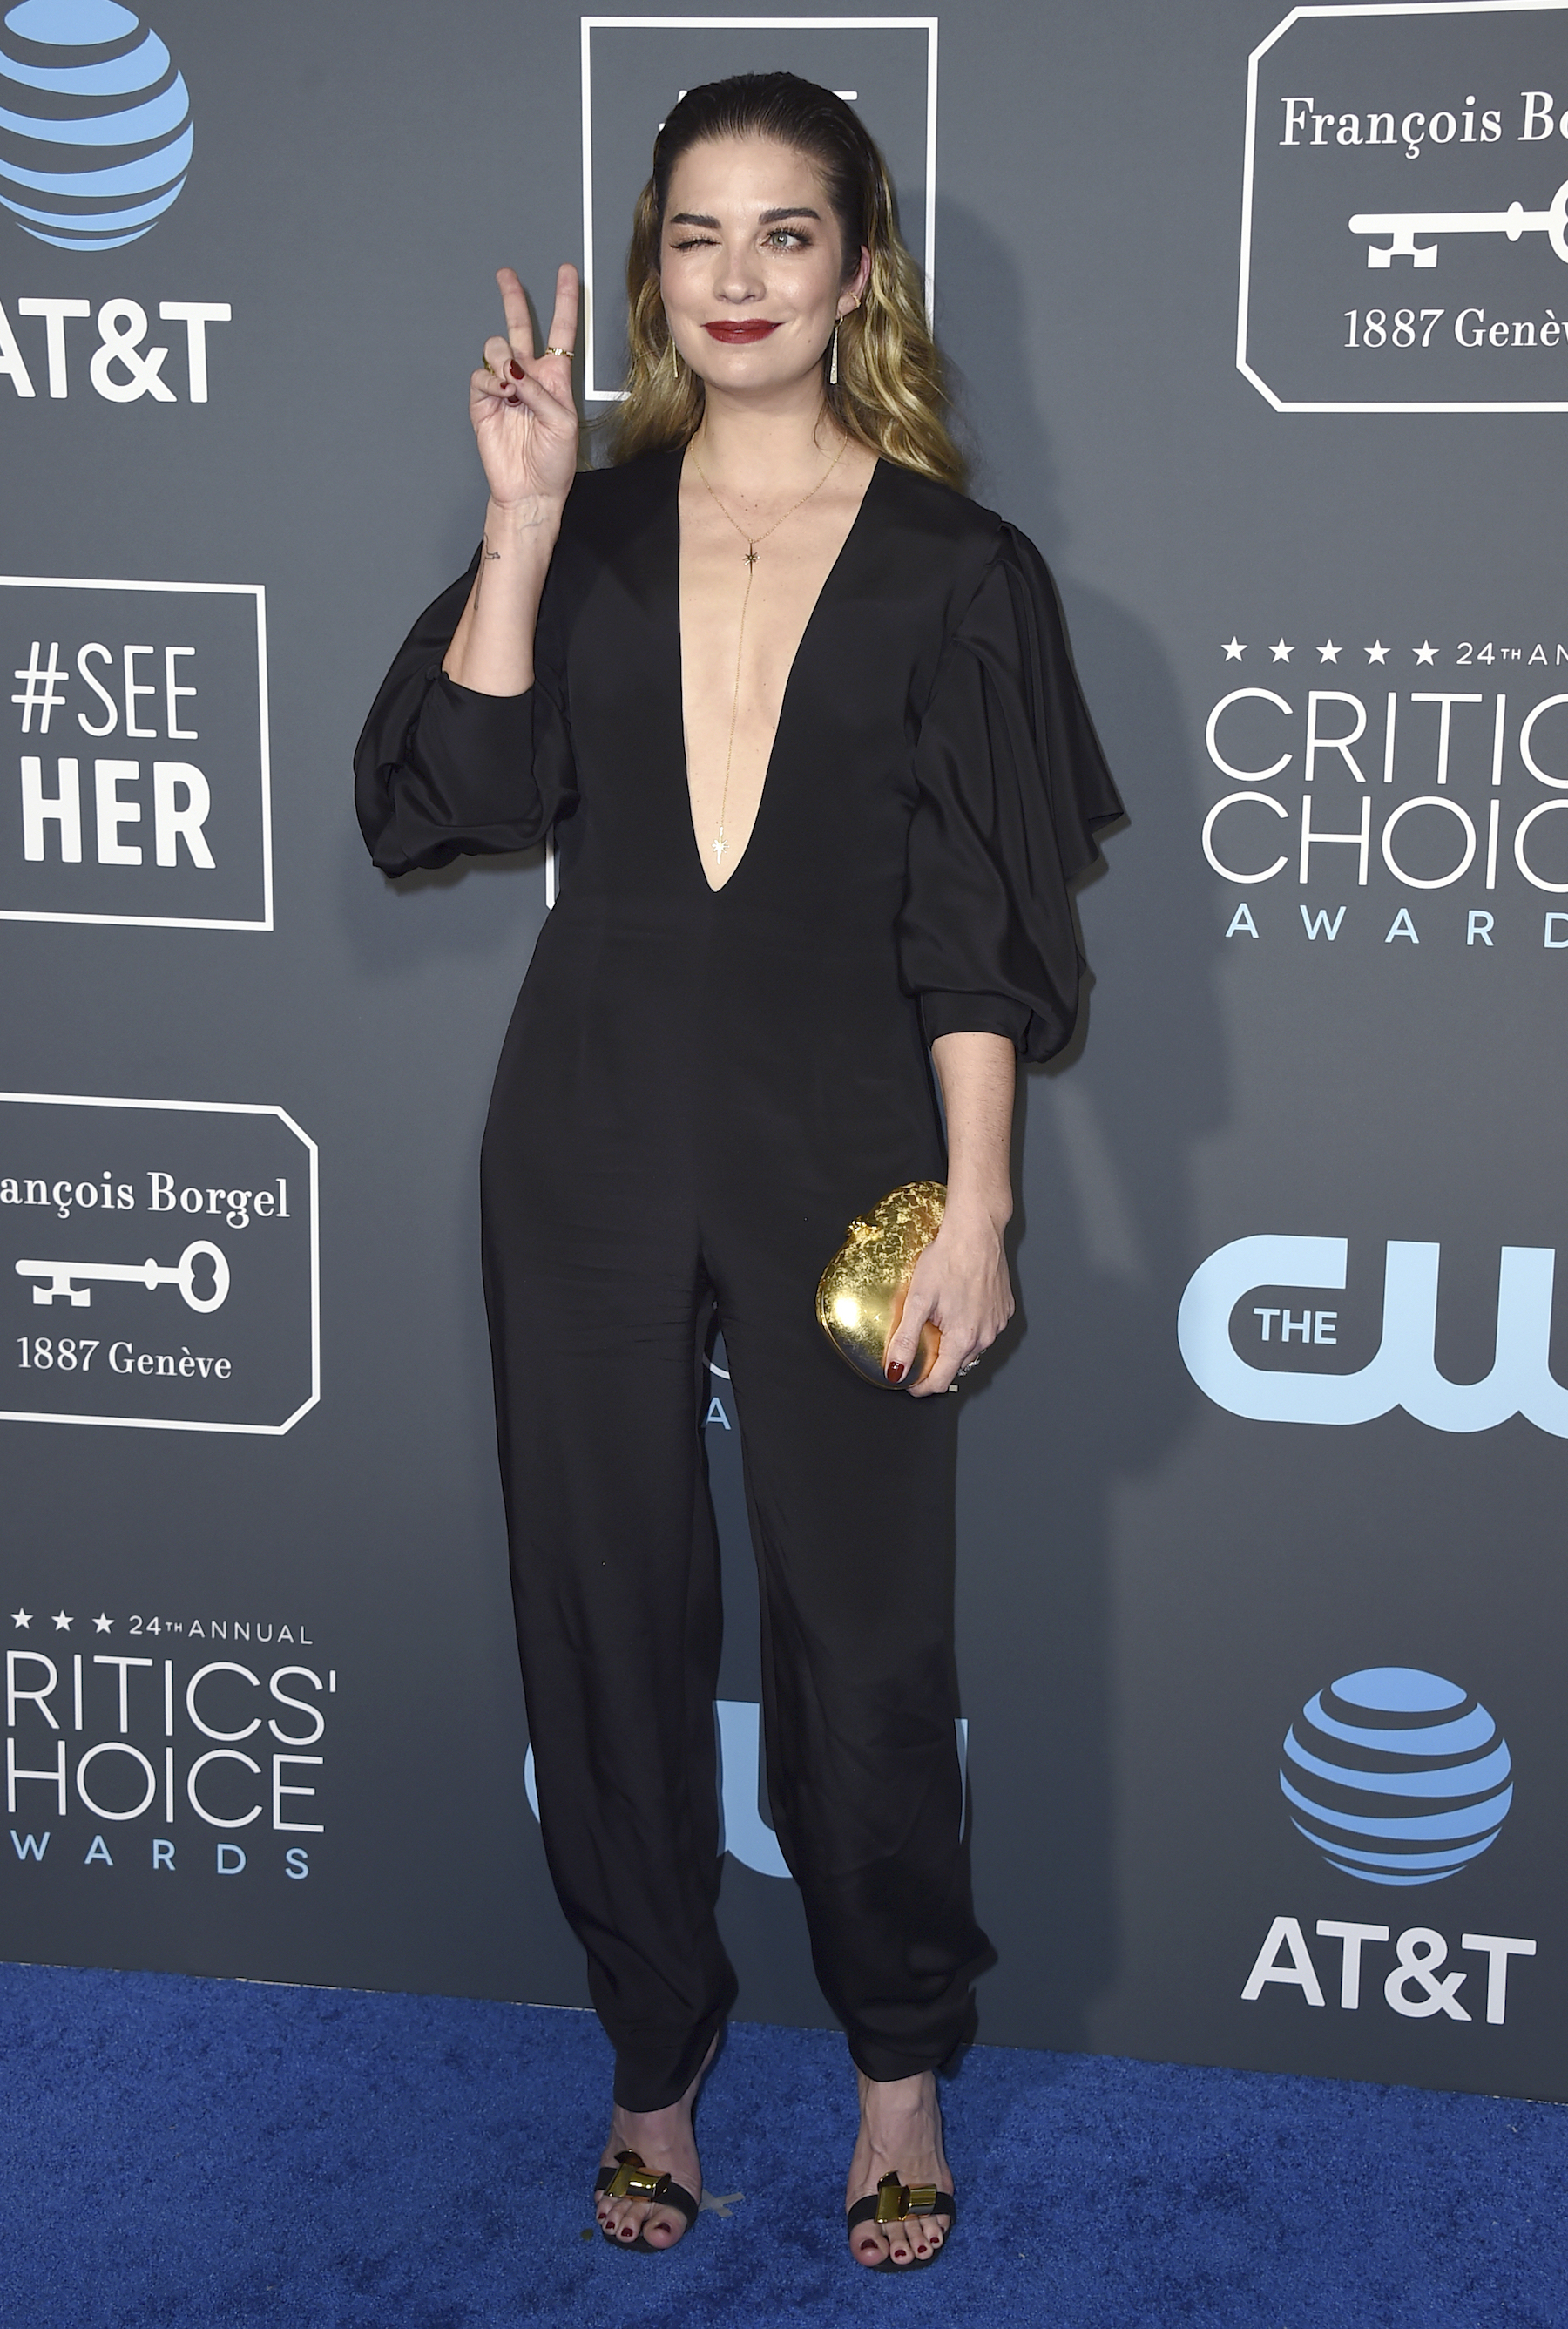 "<div class=""meta image-caption""><div class=""origin-logo origin-image ap""><span>AP</span></div><span class=""caption-text"">Annie Murphy arrives at the 24th annual Critics' Choice Awards on Sunday, Jan. 13, 2019, at the Barker Hangar in Santa Monica, Calif. (Jordan Strauss/Invision/AP)</span></div>"